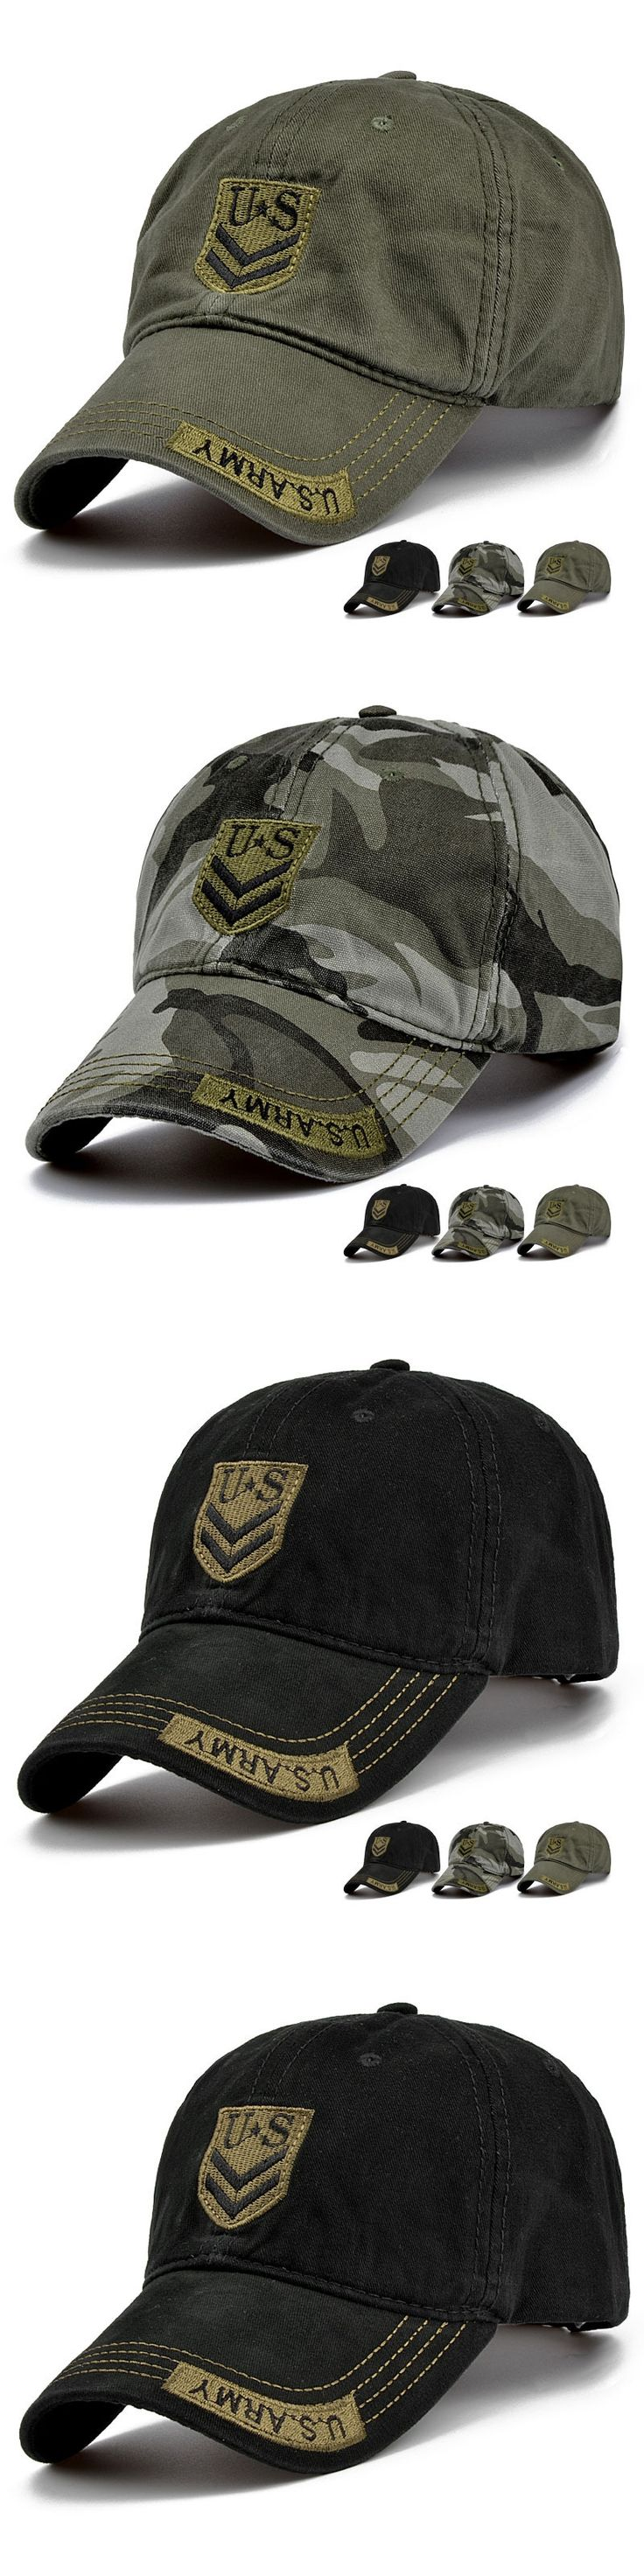 2017 camouflage baseball cap US army snapback Hat for men cap women curved peaked caps 20 colors